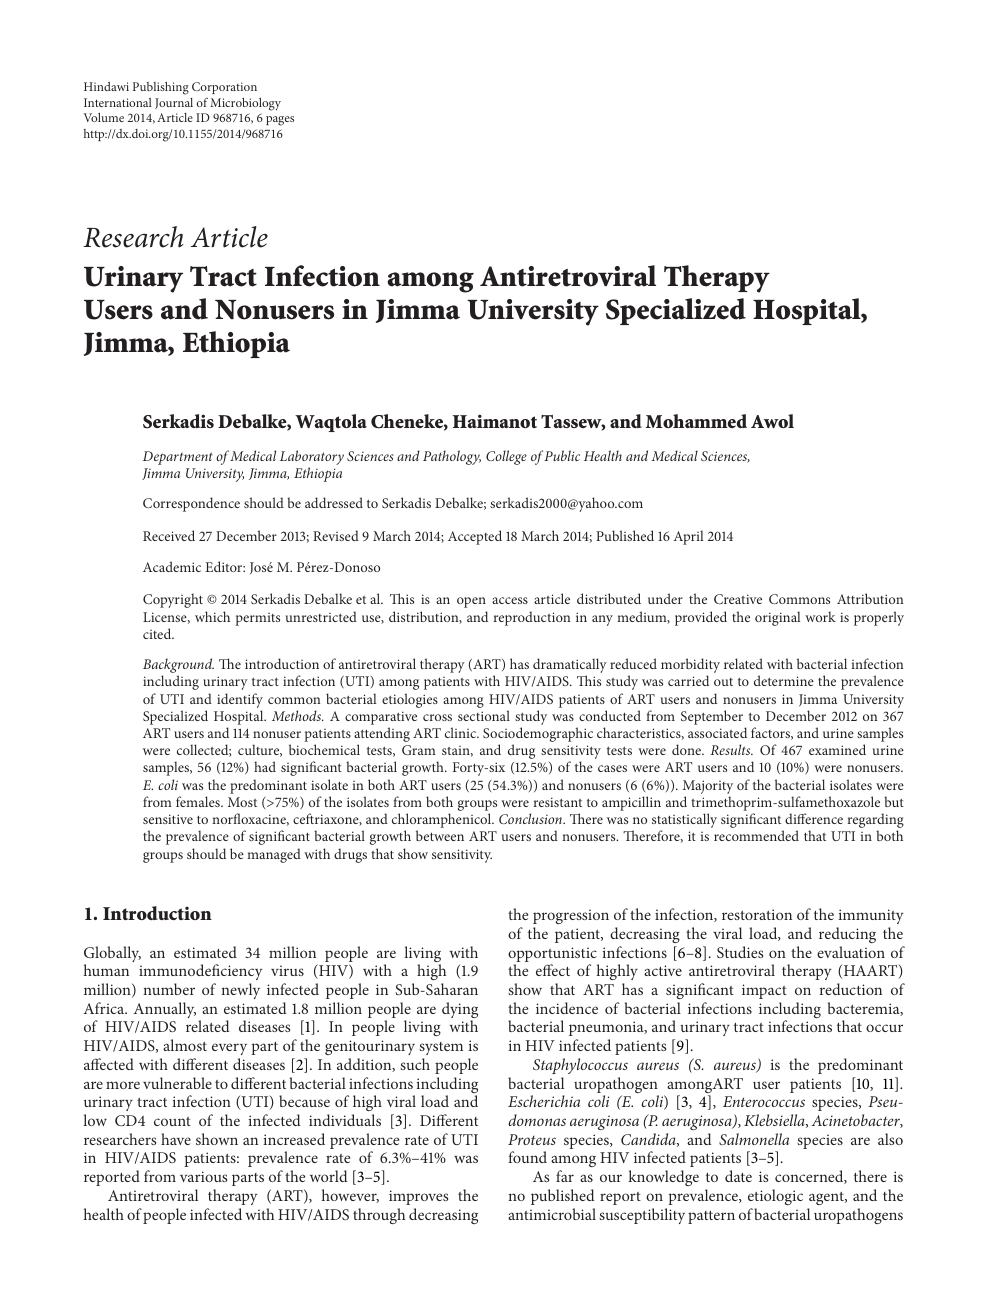 Urinary Tract Infection among Antiretroviral Therapy Users